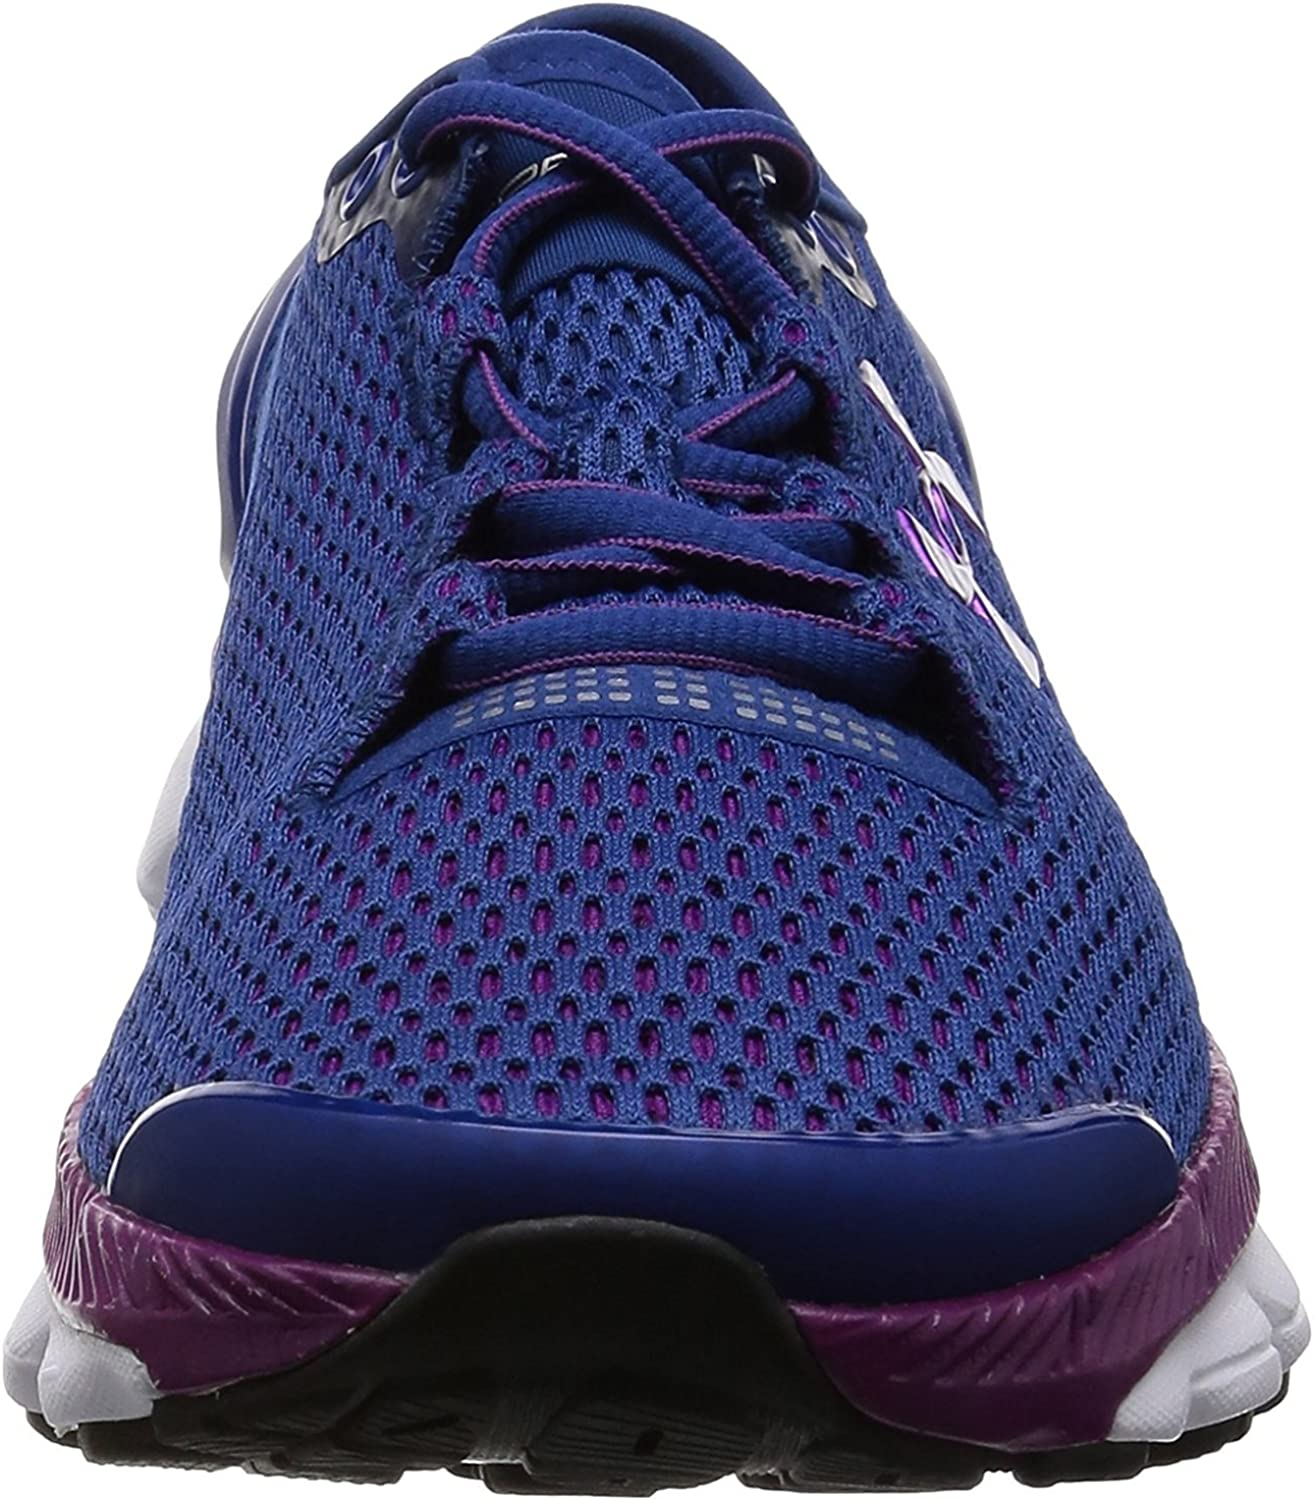 Under Armour Speedform Gemini 2 Women's Zapatillas para Correr - SS16 Azul Marino 27qK1